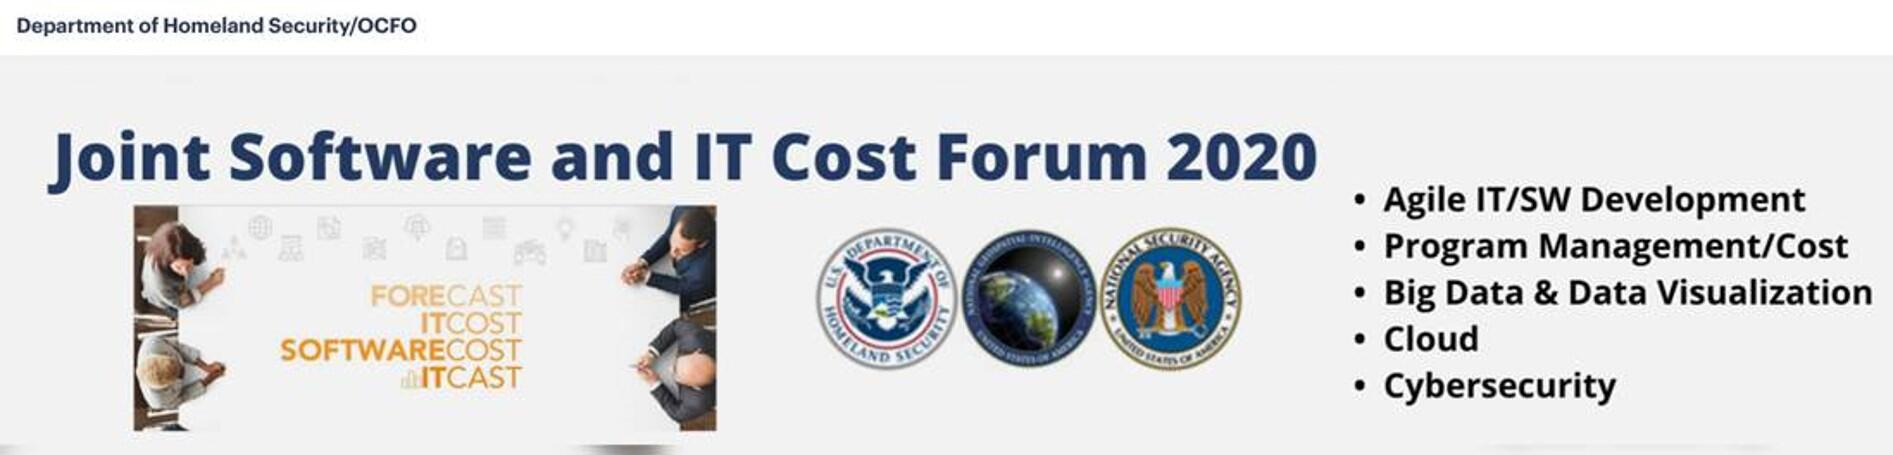 Department of Homeland Security/OCFO Joint Software and IT Cost Forum 2020: Agile IT/SW Development; Program  Management/Cost; Bid Data & Data Visualization; Cloud; Cybersecurity